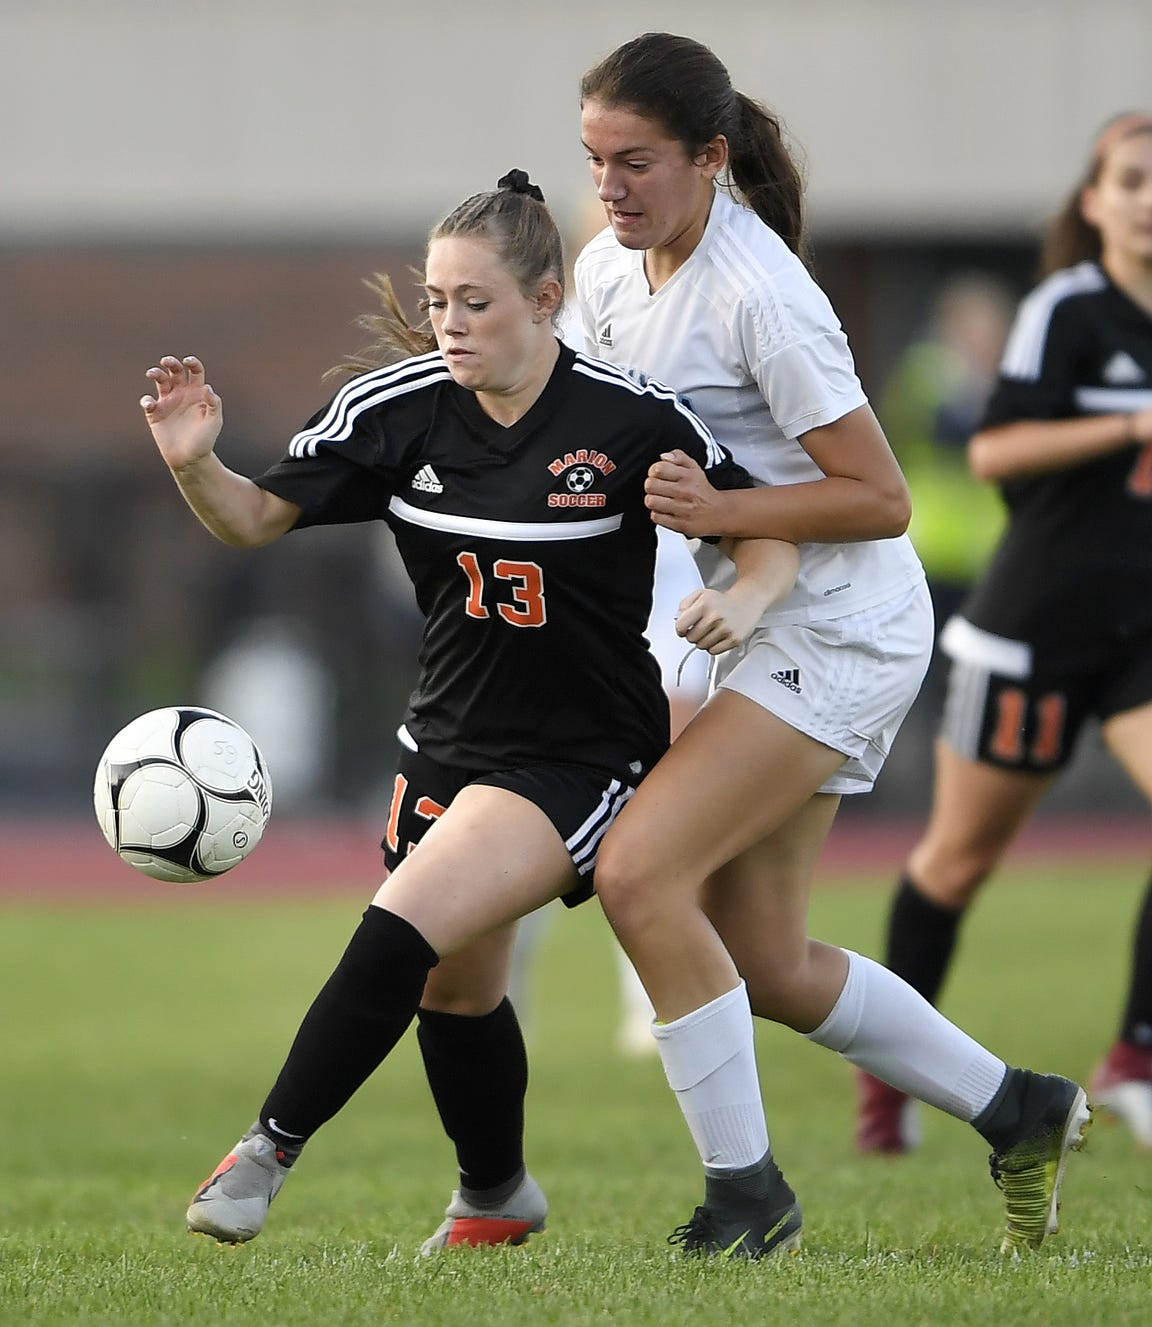 Marion's Chloe DeLyser, left, shields the ball from Gananda's Natalie McLoud during a game this season. DeLyser scored 79 goals this fall and holds the state record with 260 goals with one season left to play.